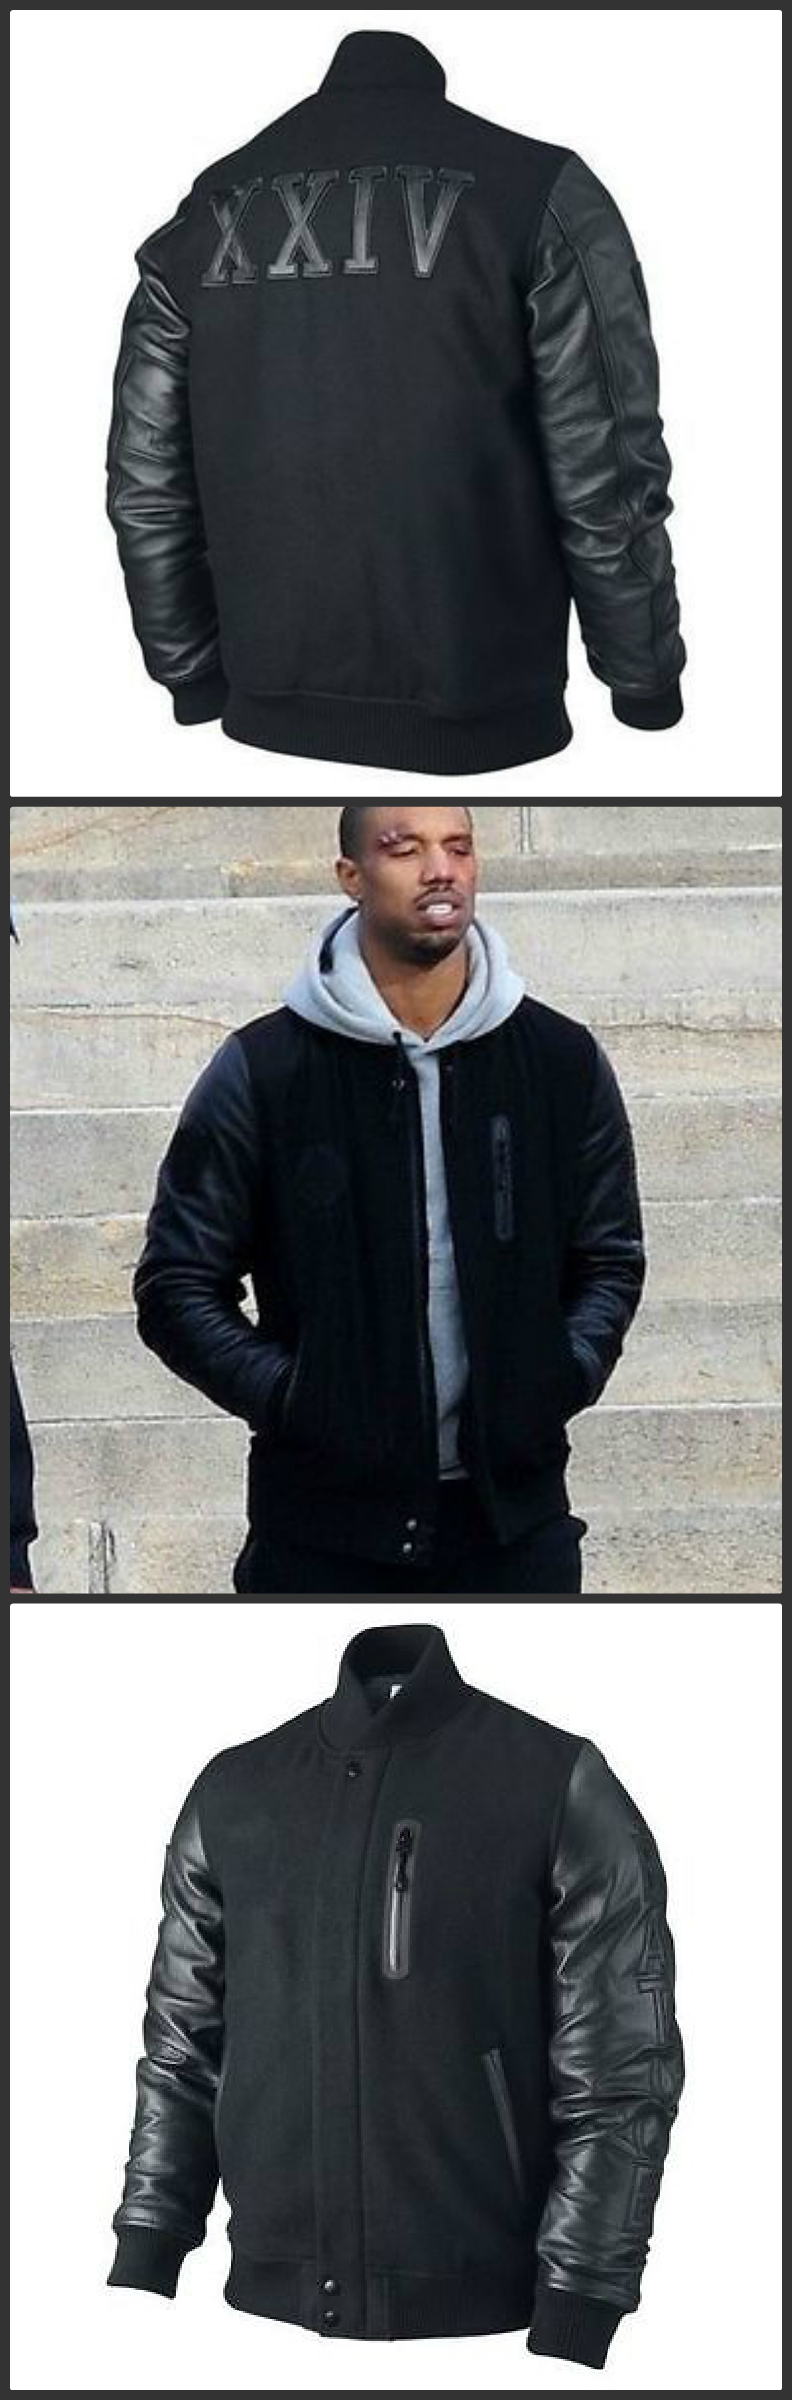 e09c93101af Attractive sports jacket of Michael B Jordan carry in Creed 2015 sports  drama film play as Adonis Creed in the movie. Made with Wool Fabric With  Real ...